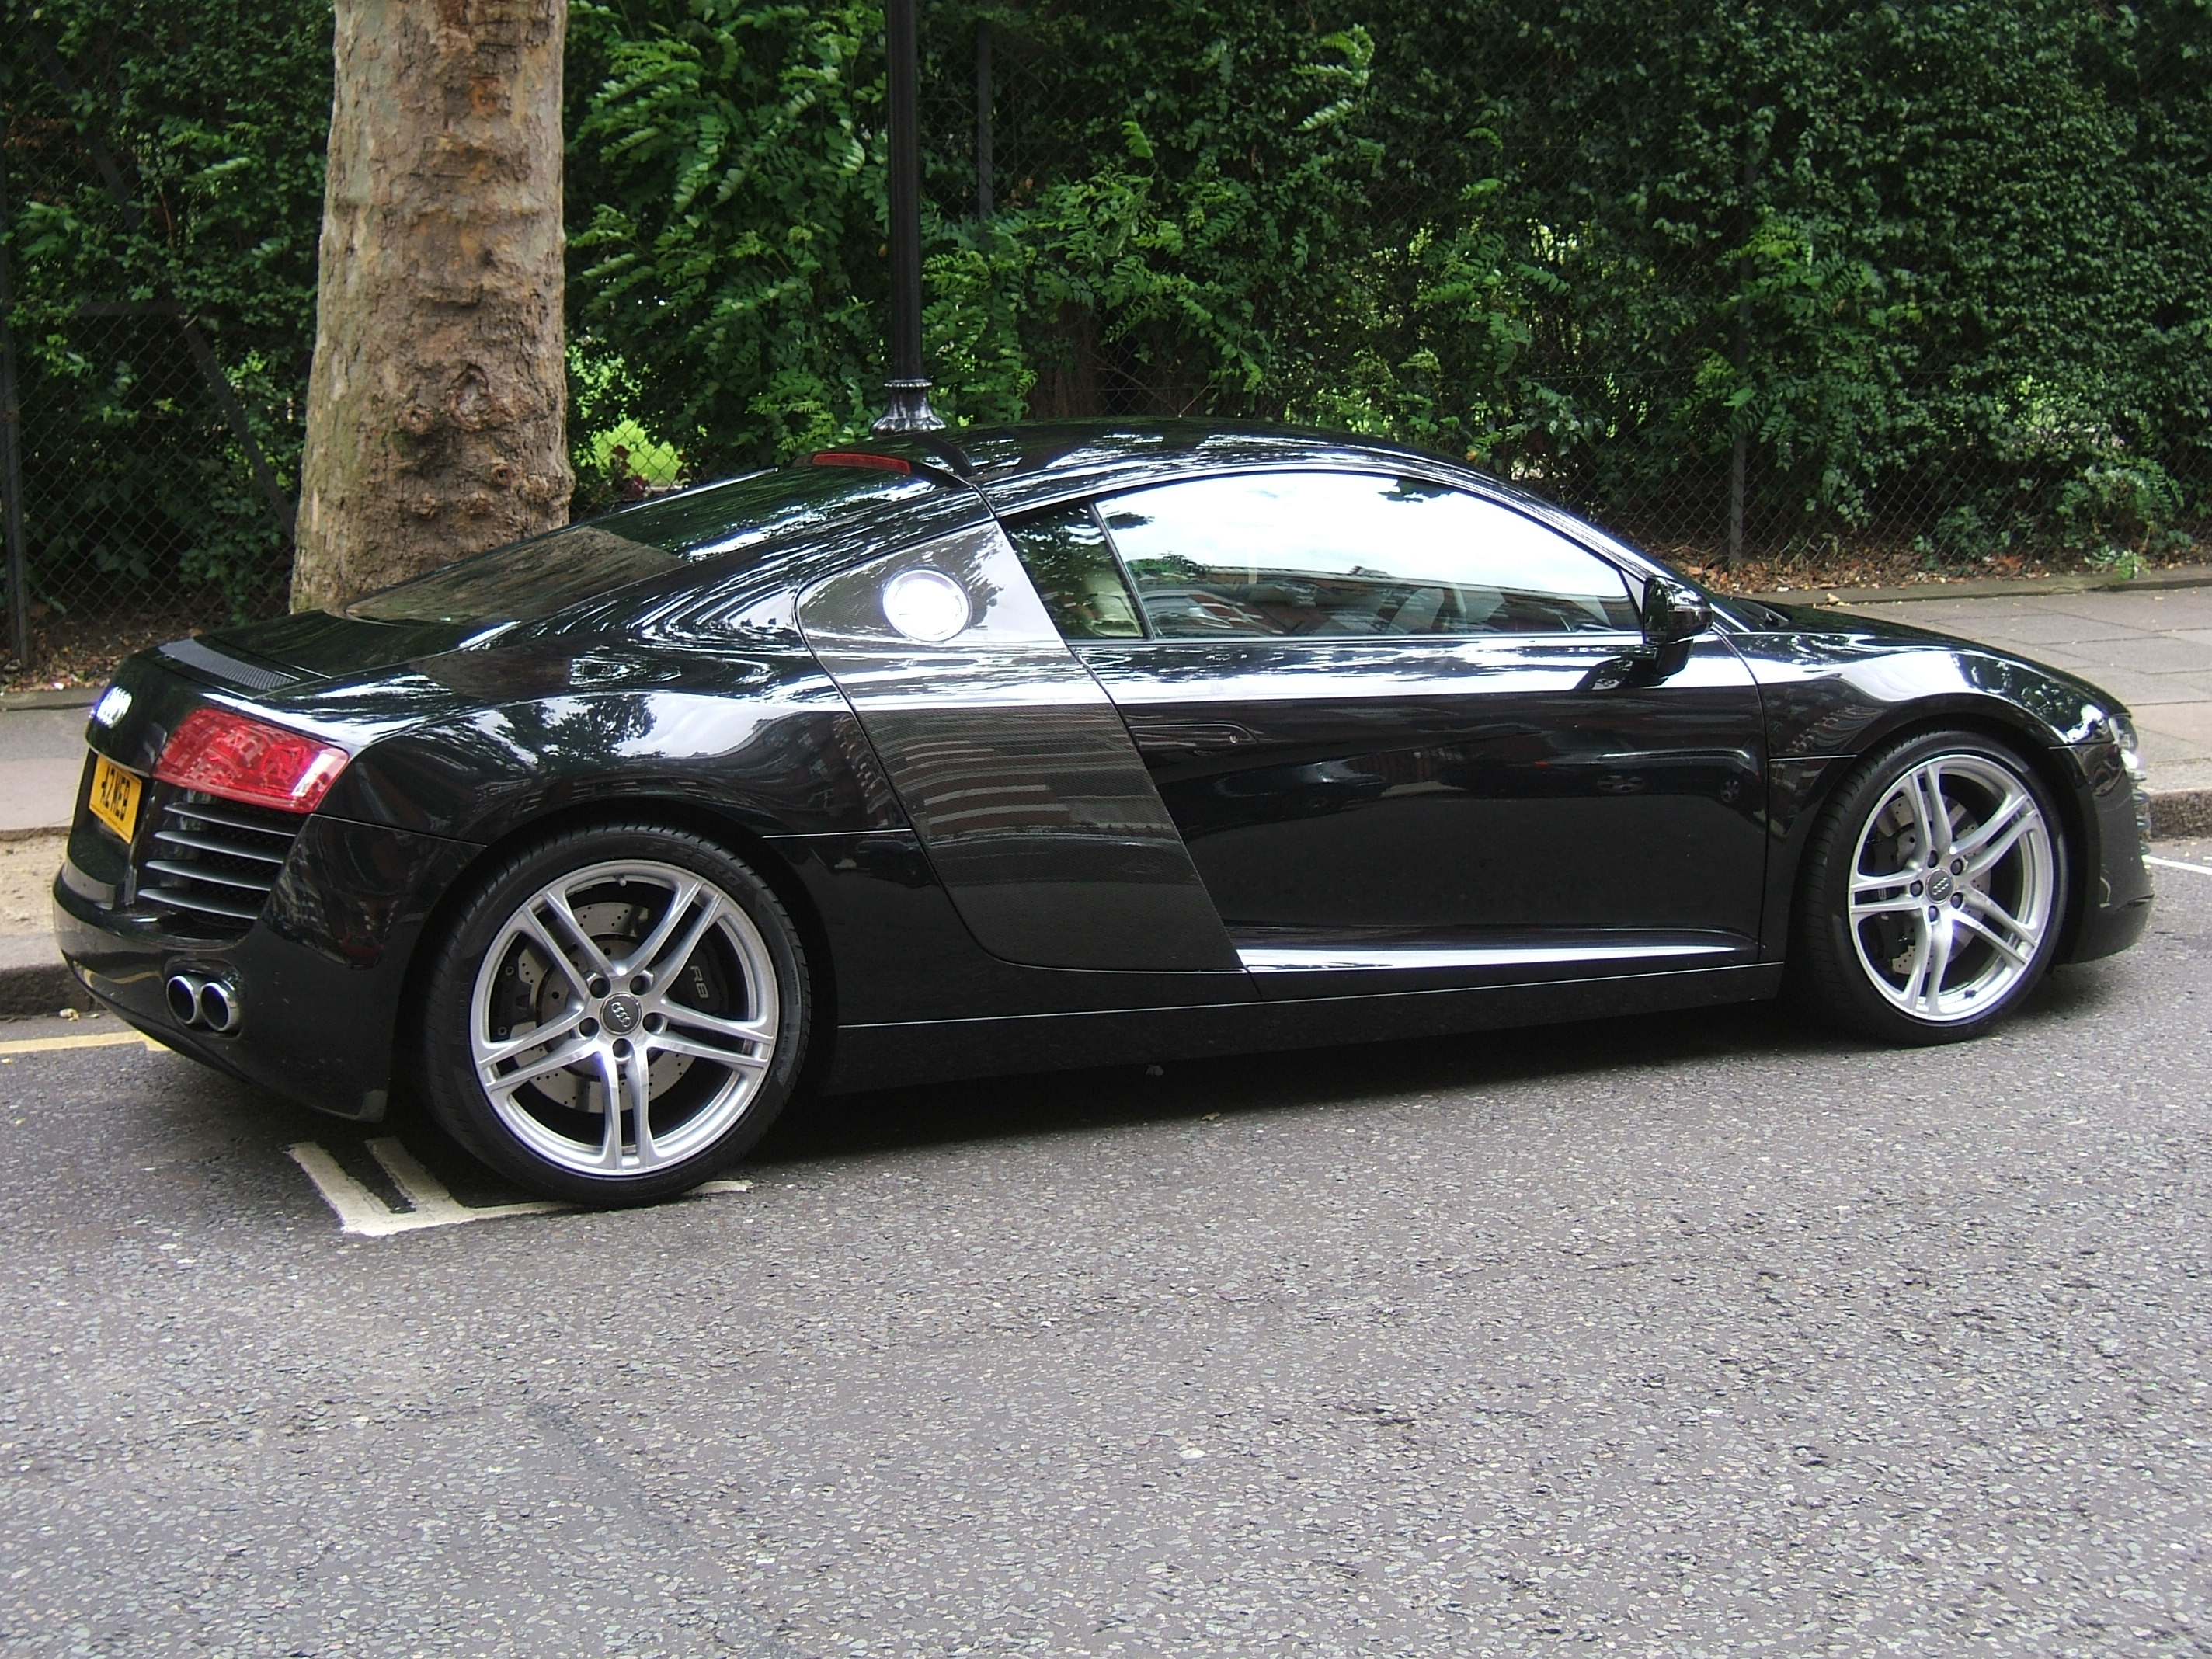 FileBlack Audi R Jpg Wikimedia Commons - Audi r8 black